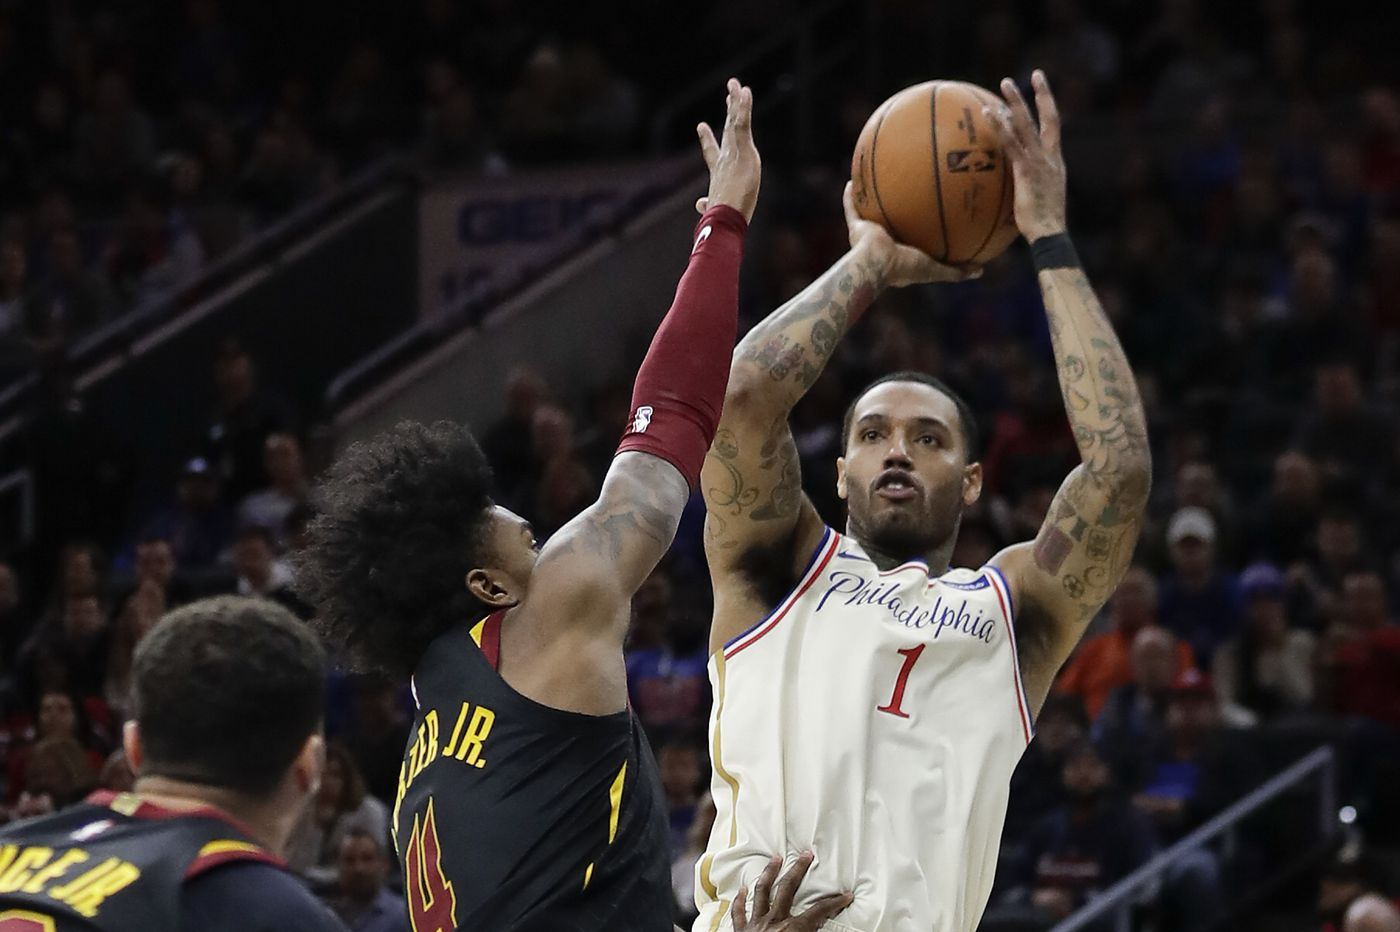 Sixers' Mike Scott delivers vs. Cleveland Cavaliers in first start this season